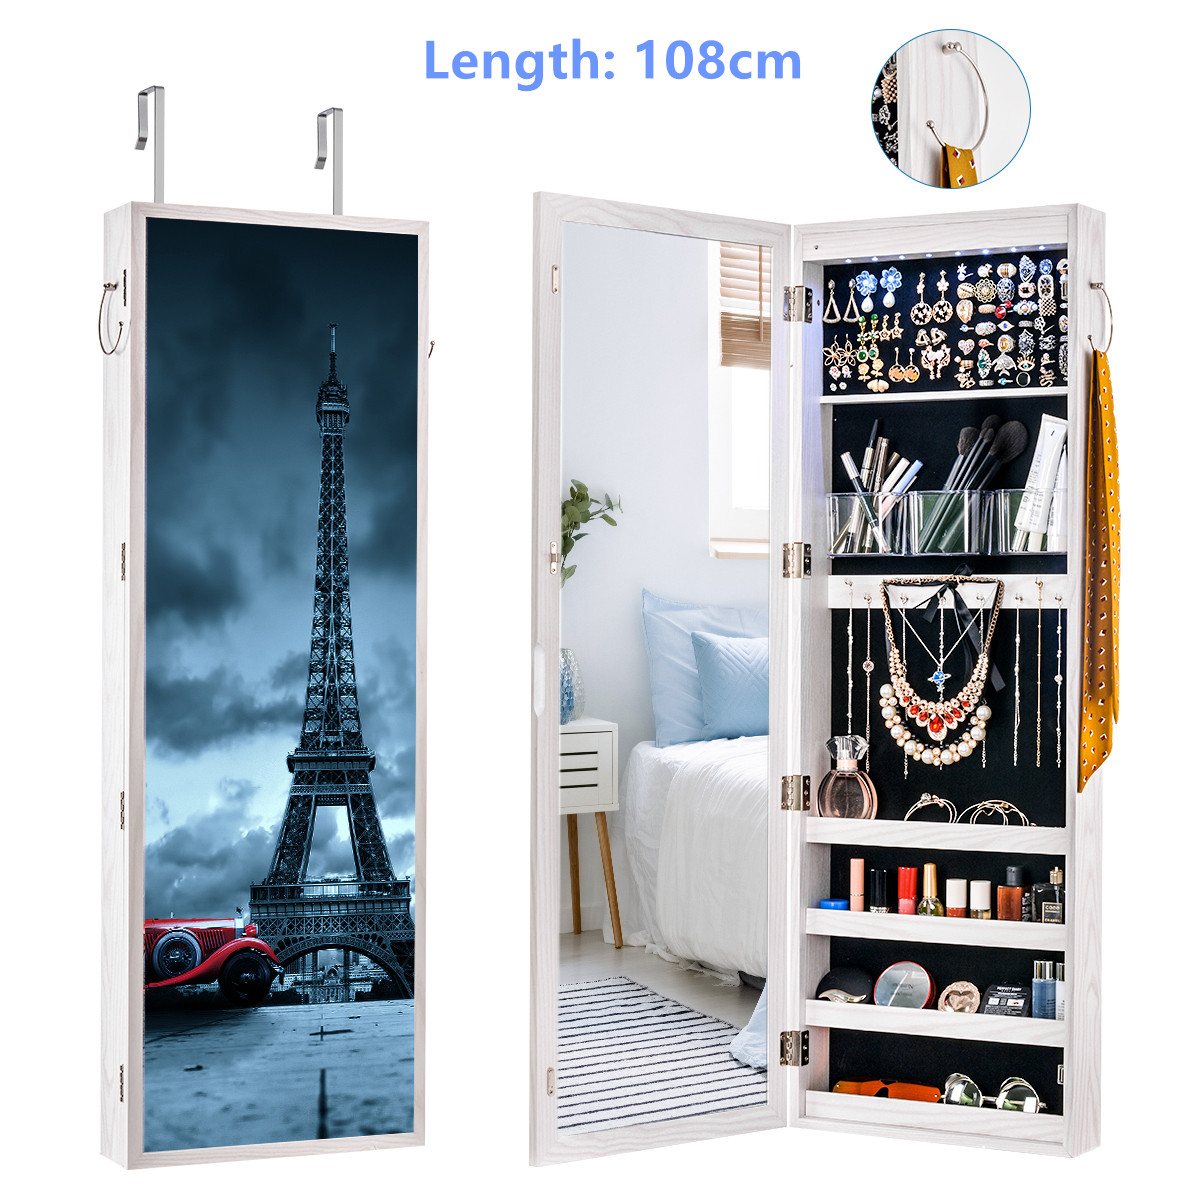 Multifunctional LED Jewelry Mirror Cabinet Wall Door Mounted Jewelry Cabinet Lockable Armoire Organizer Dresser Mirror with LED 10